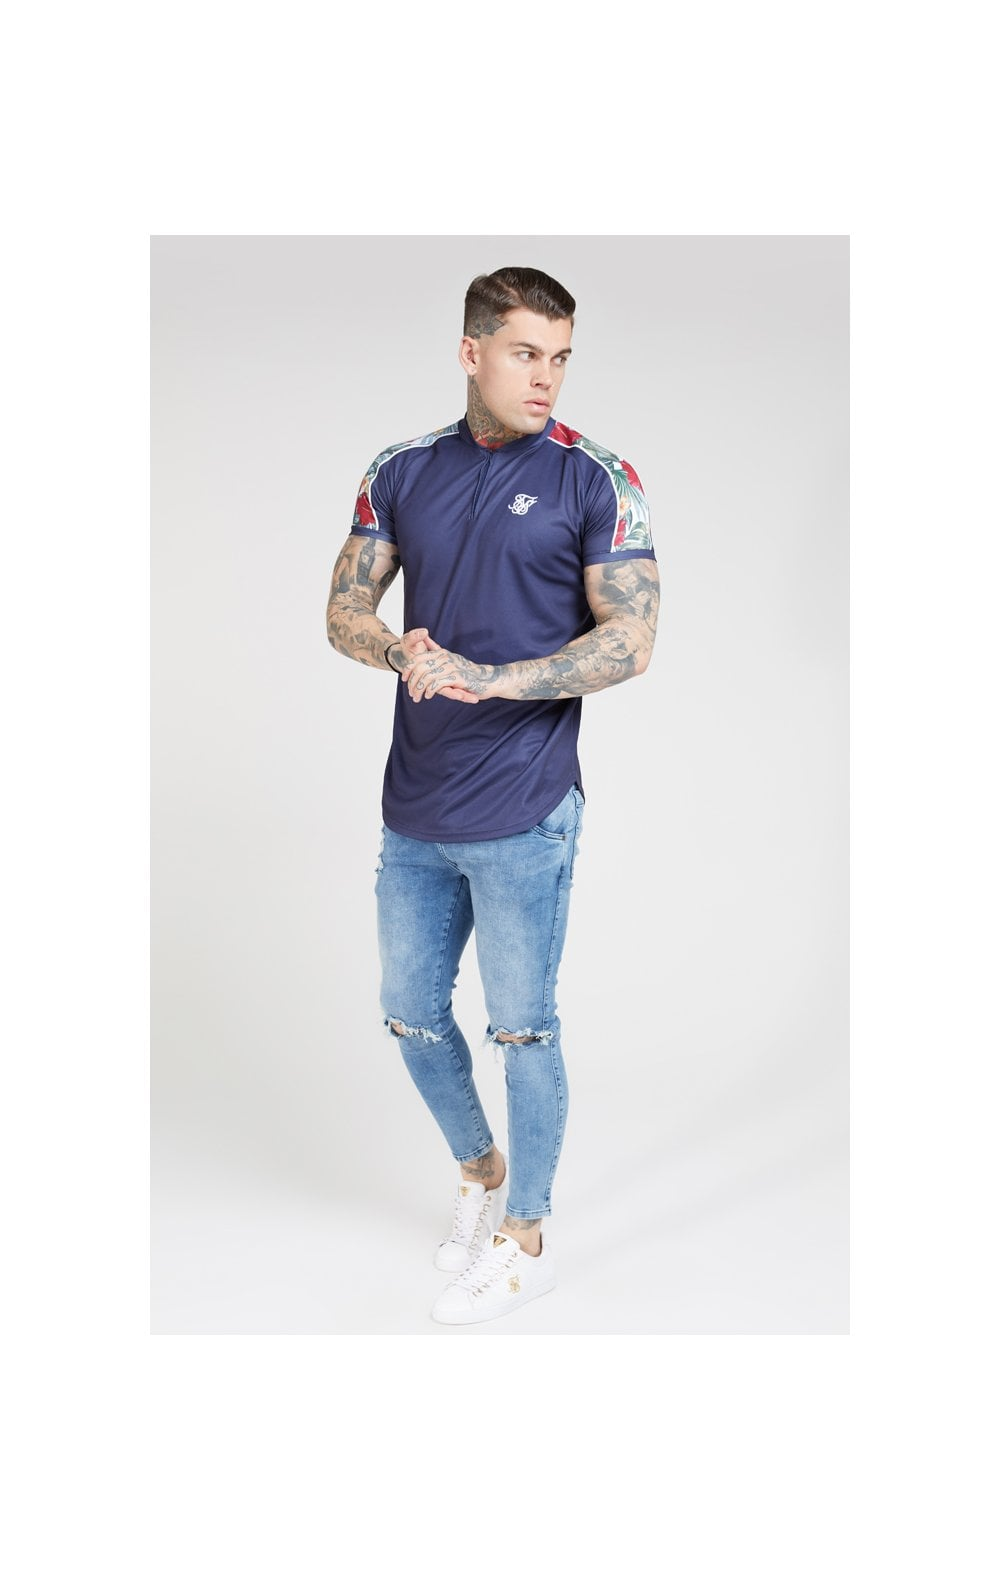 SikSilk S/S Baseball Tee – Navy (3)